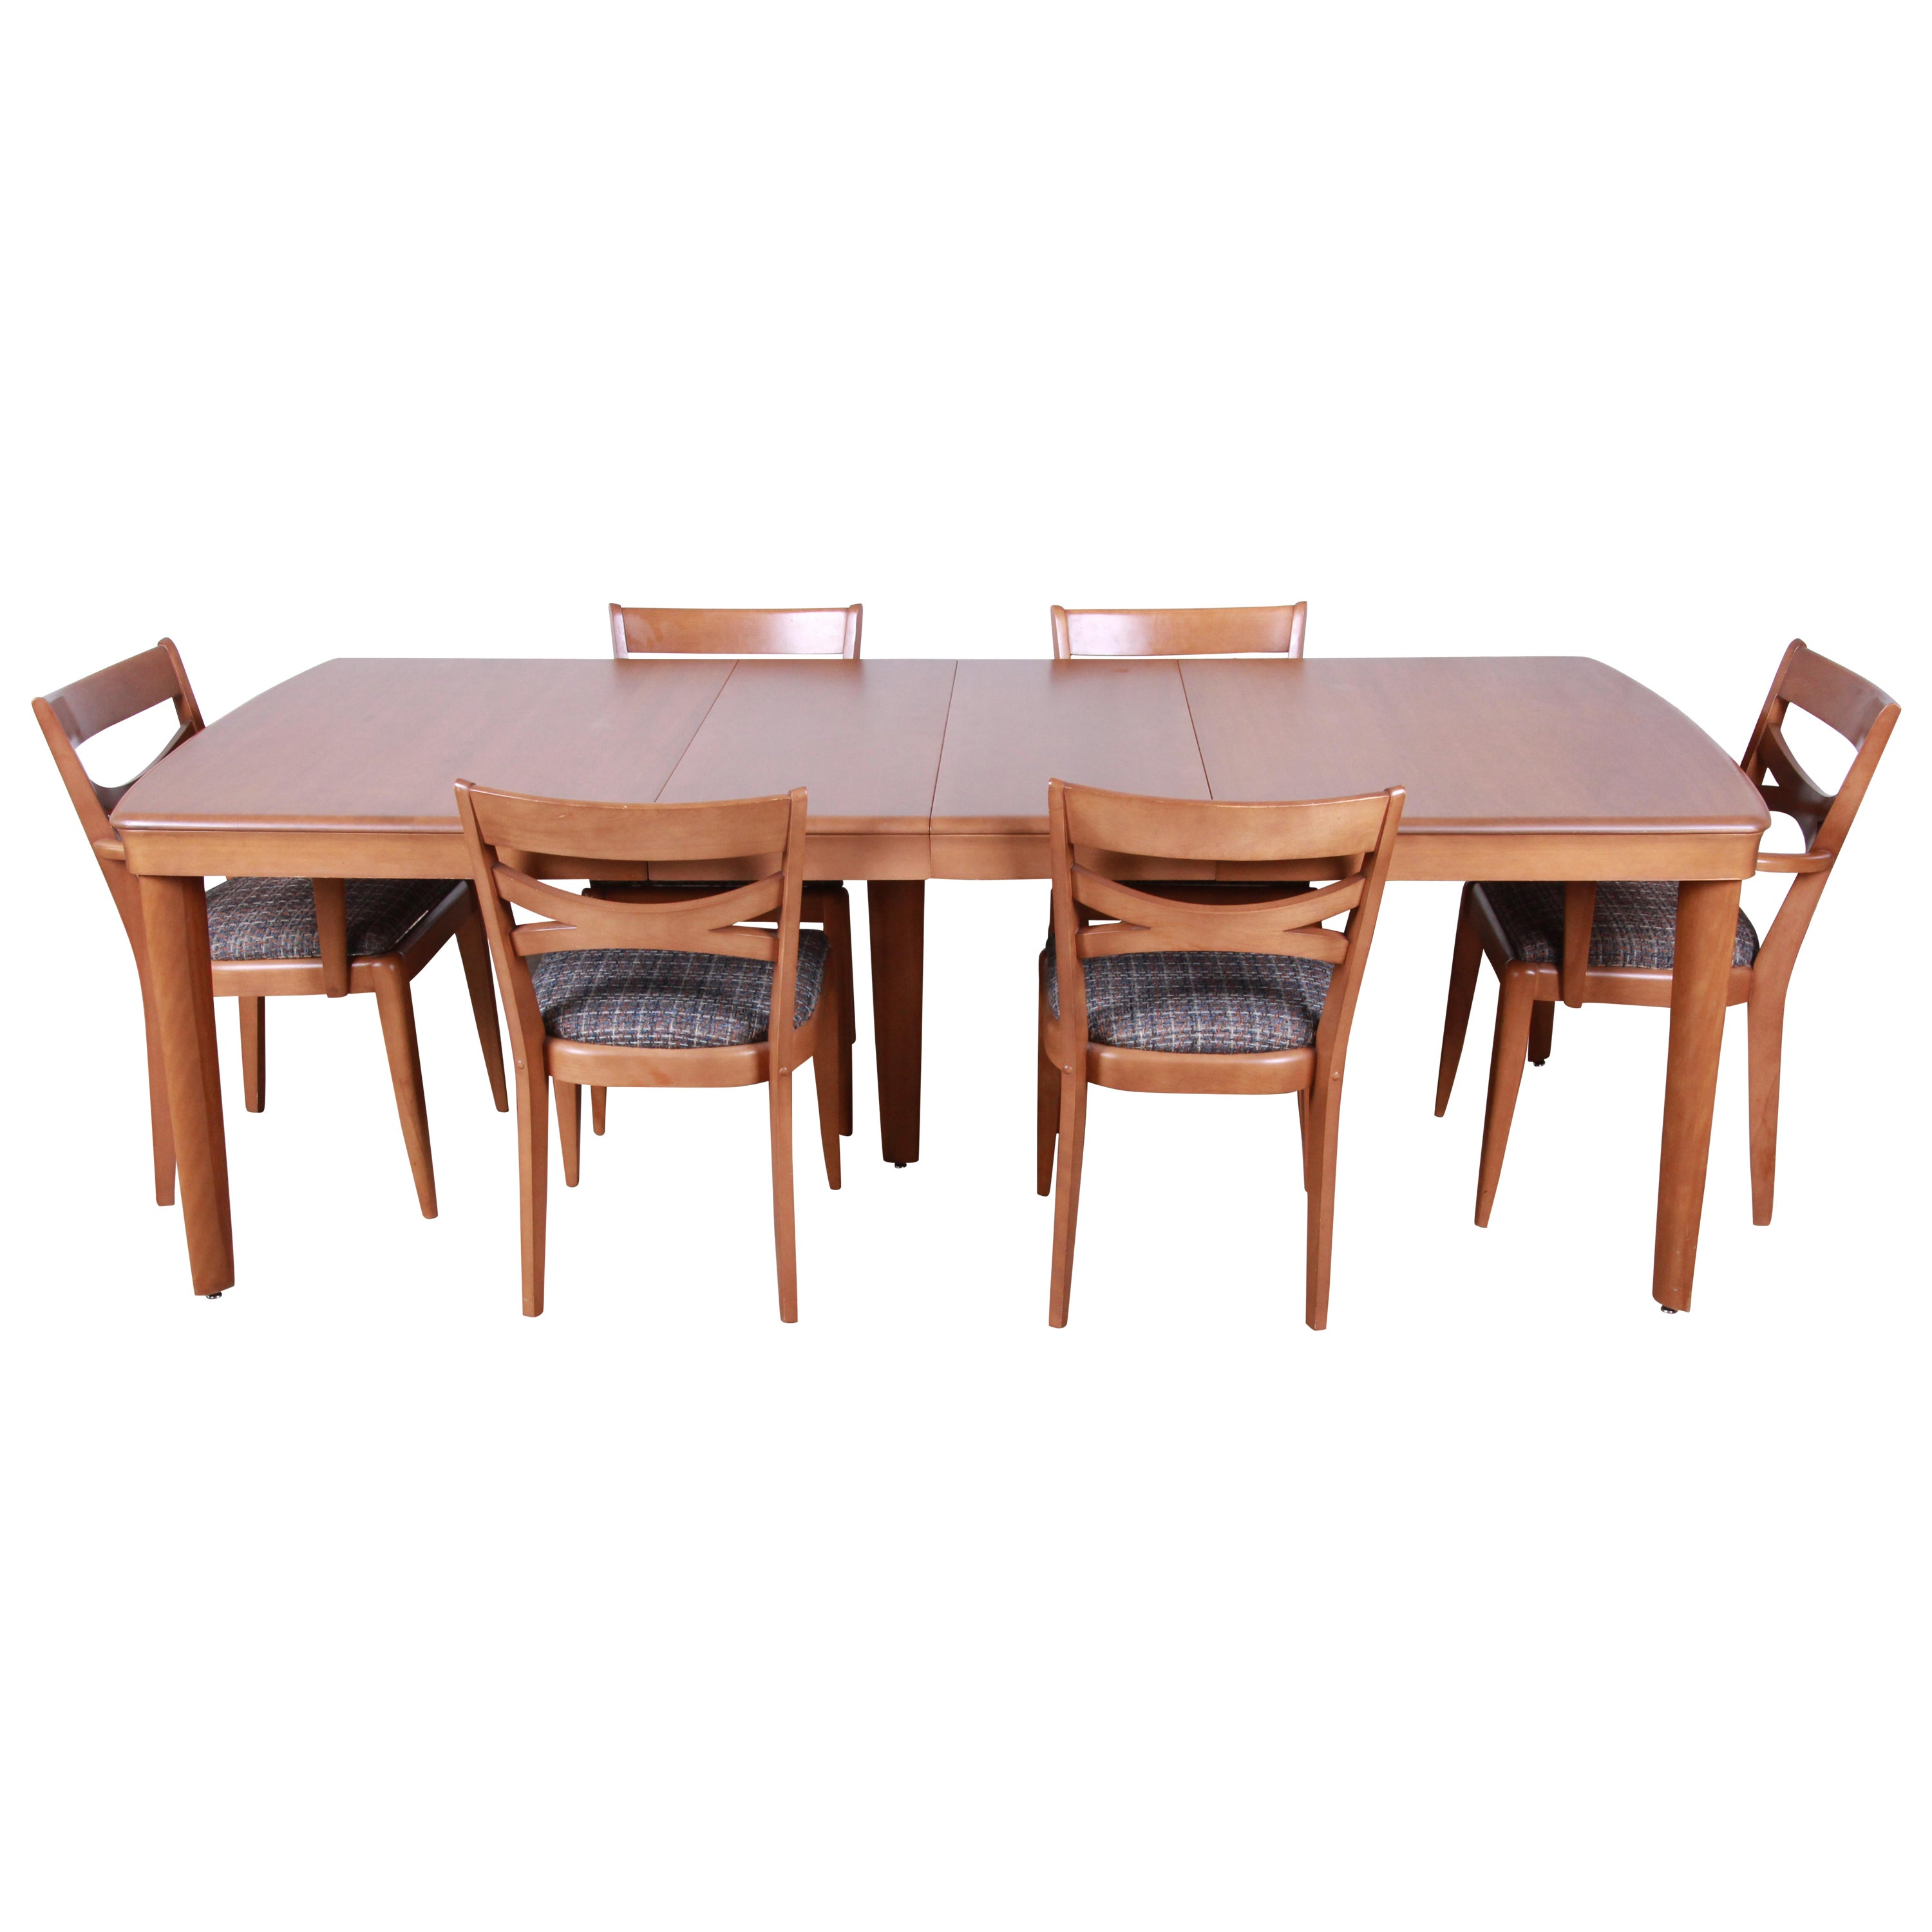 Heywood Wakefield Dining Chairs Heywood Wakefield Mid Century Modern Extension Dining Table And Chairs